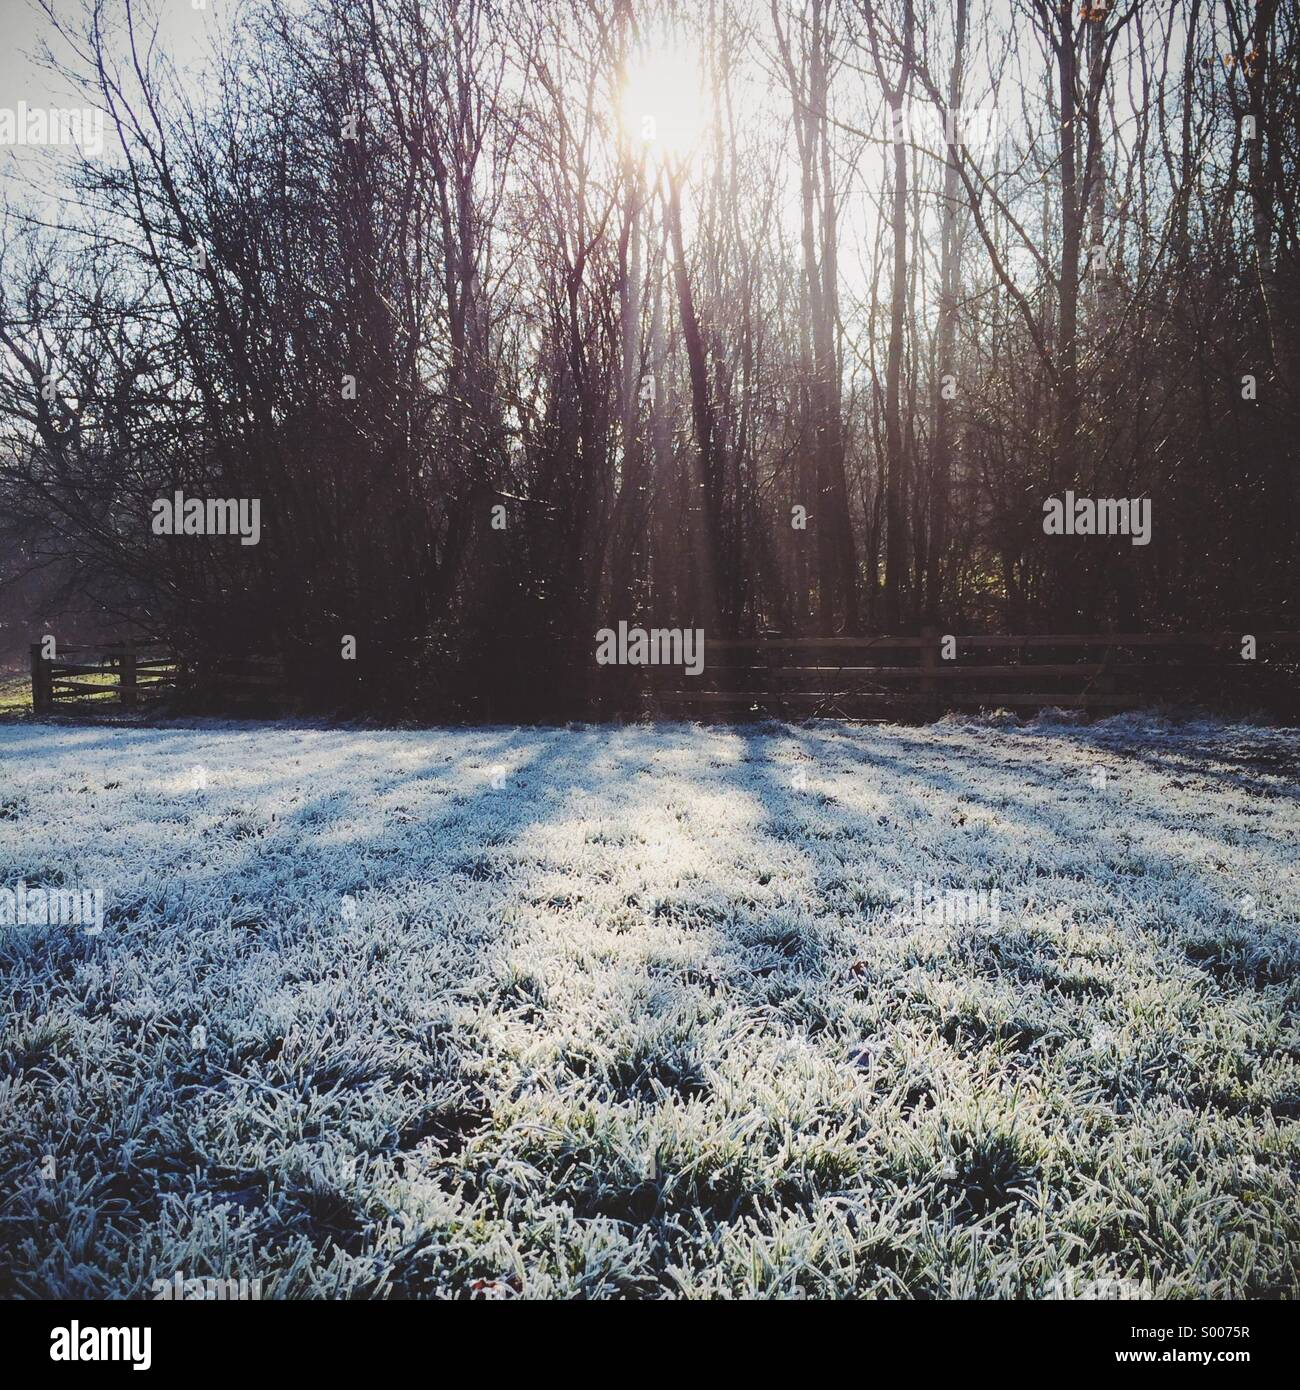 Low winter sun shining through trees and creating shadows on a patch of grass which is covered with a harsh frost - Stock Image